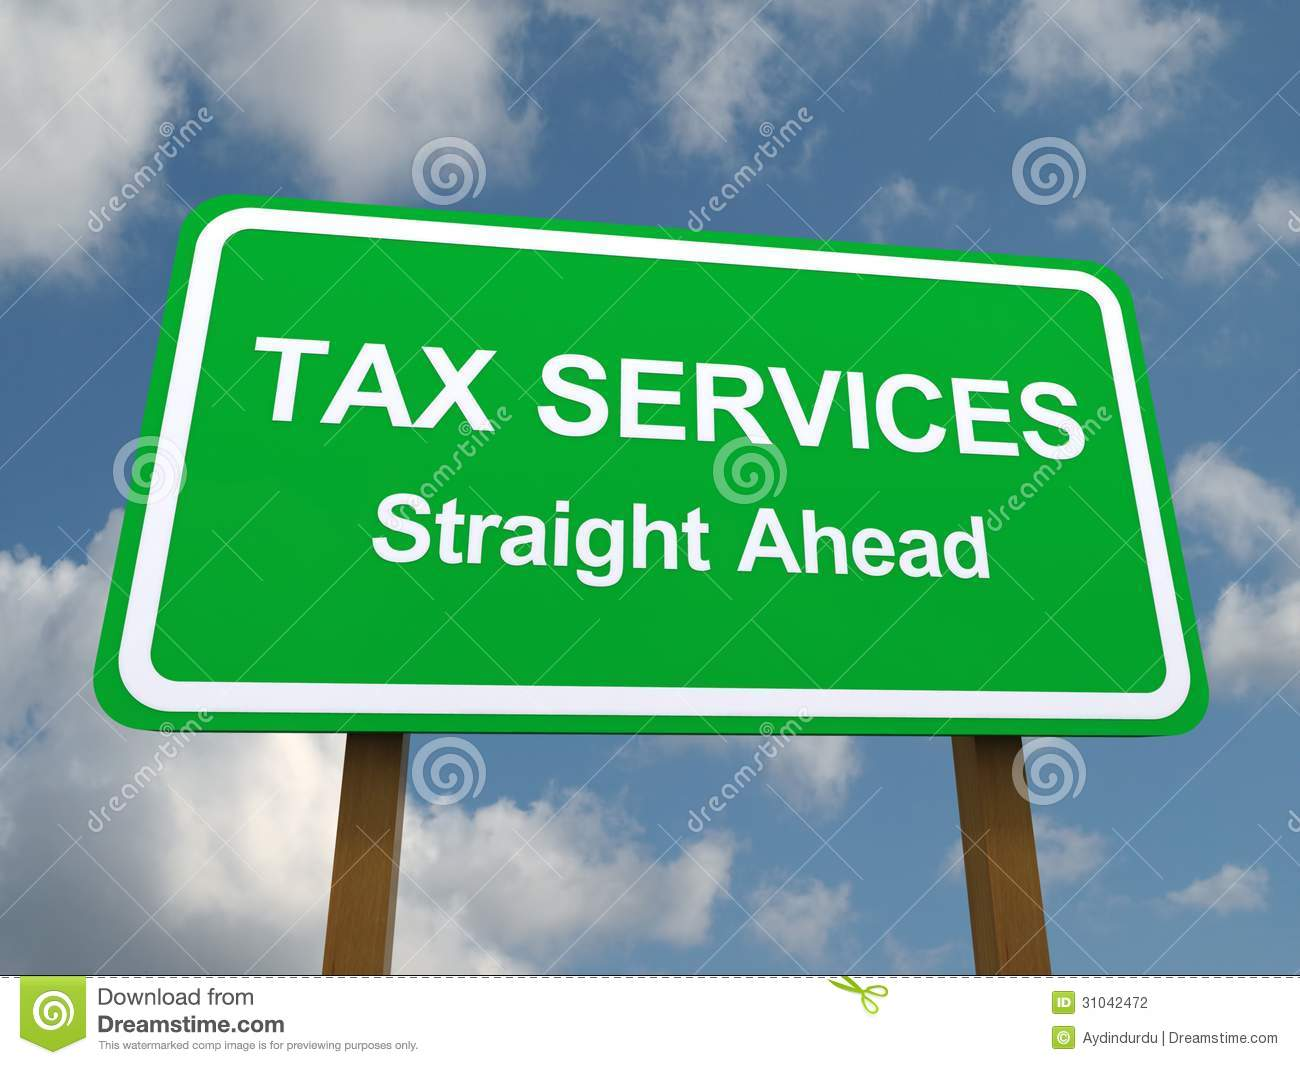 Tax services straight ahead